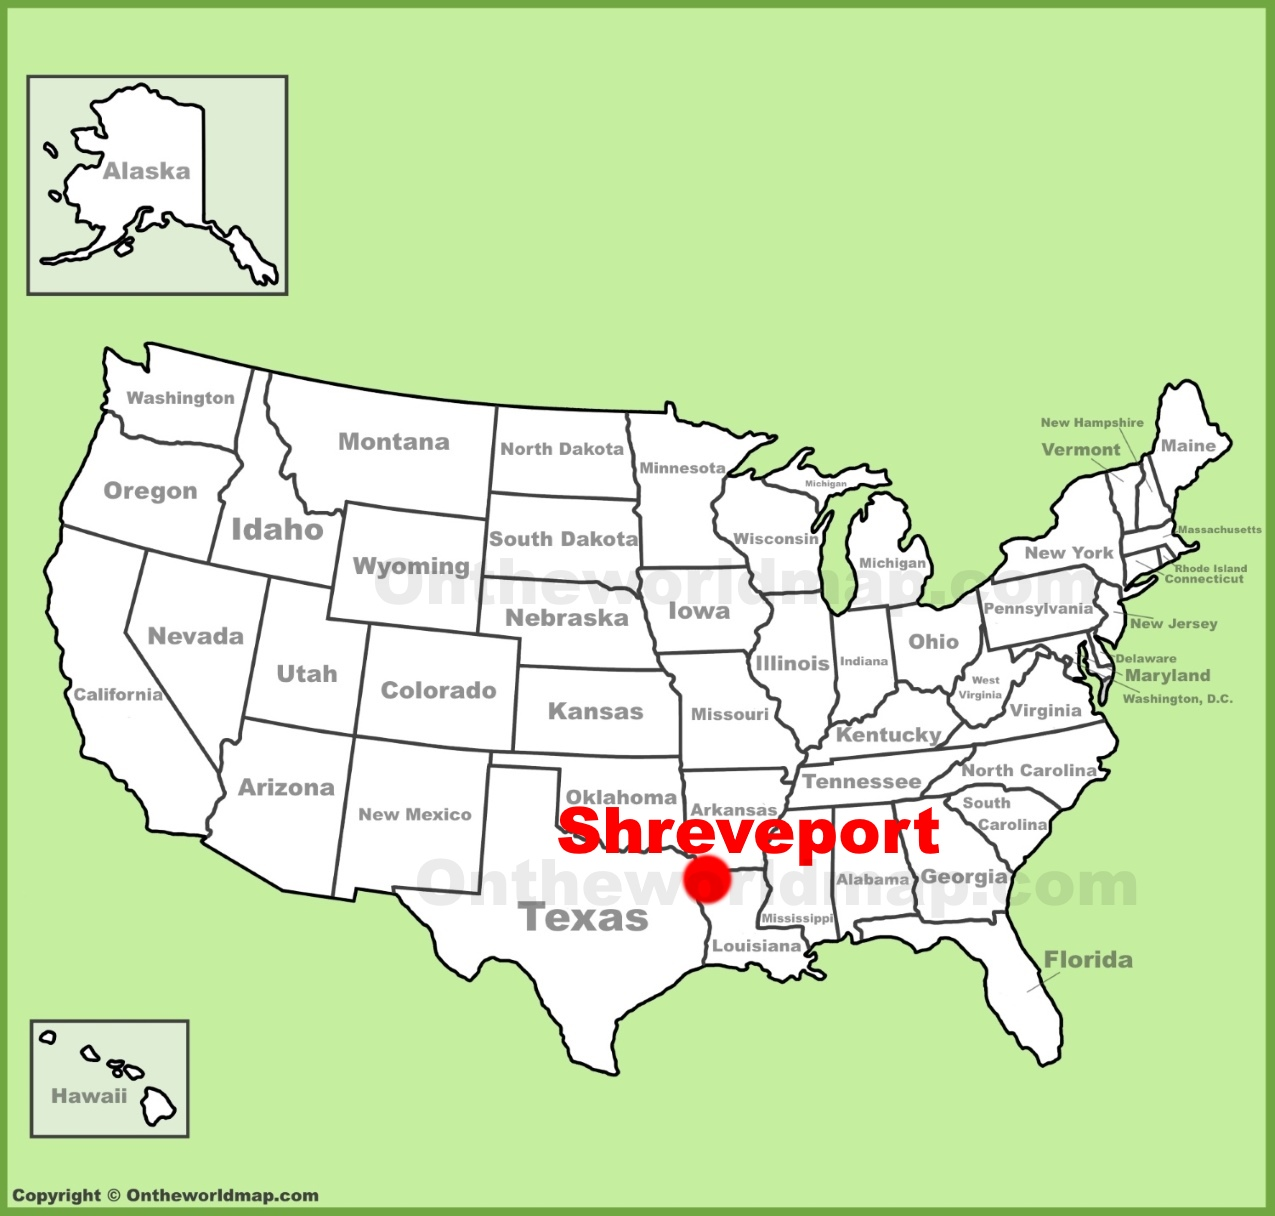 Shreveport location on the US Map